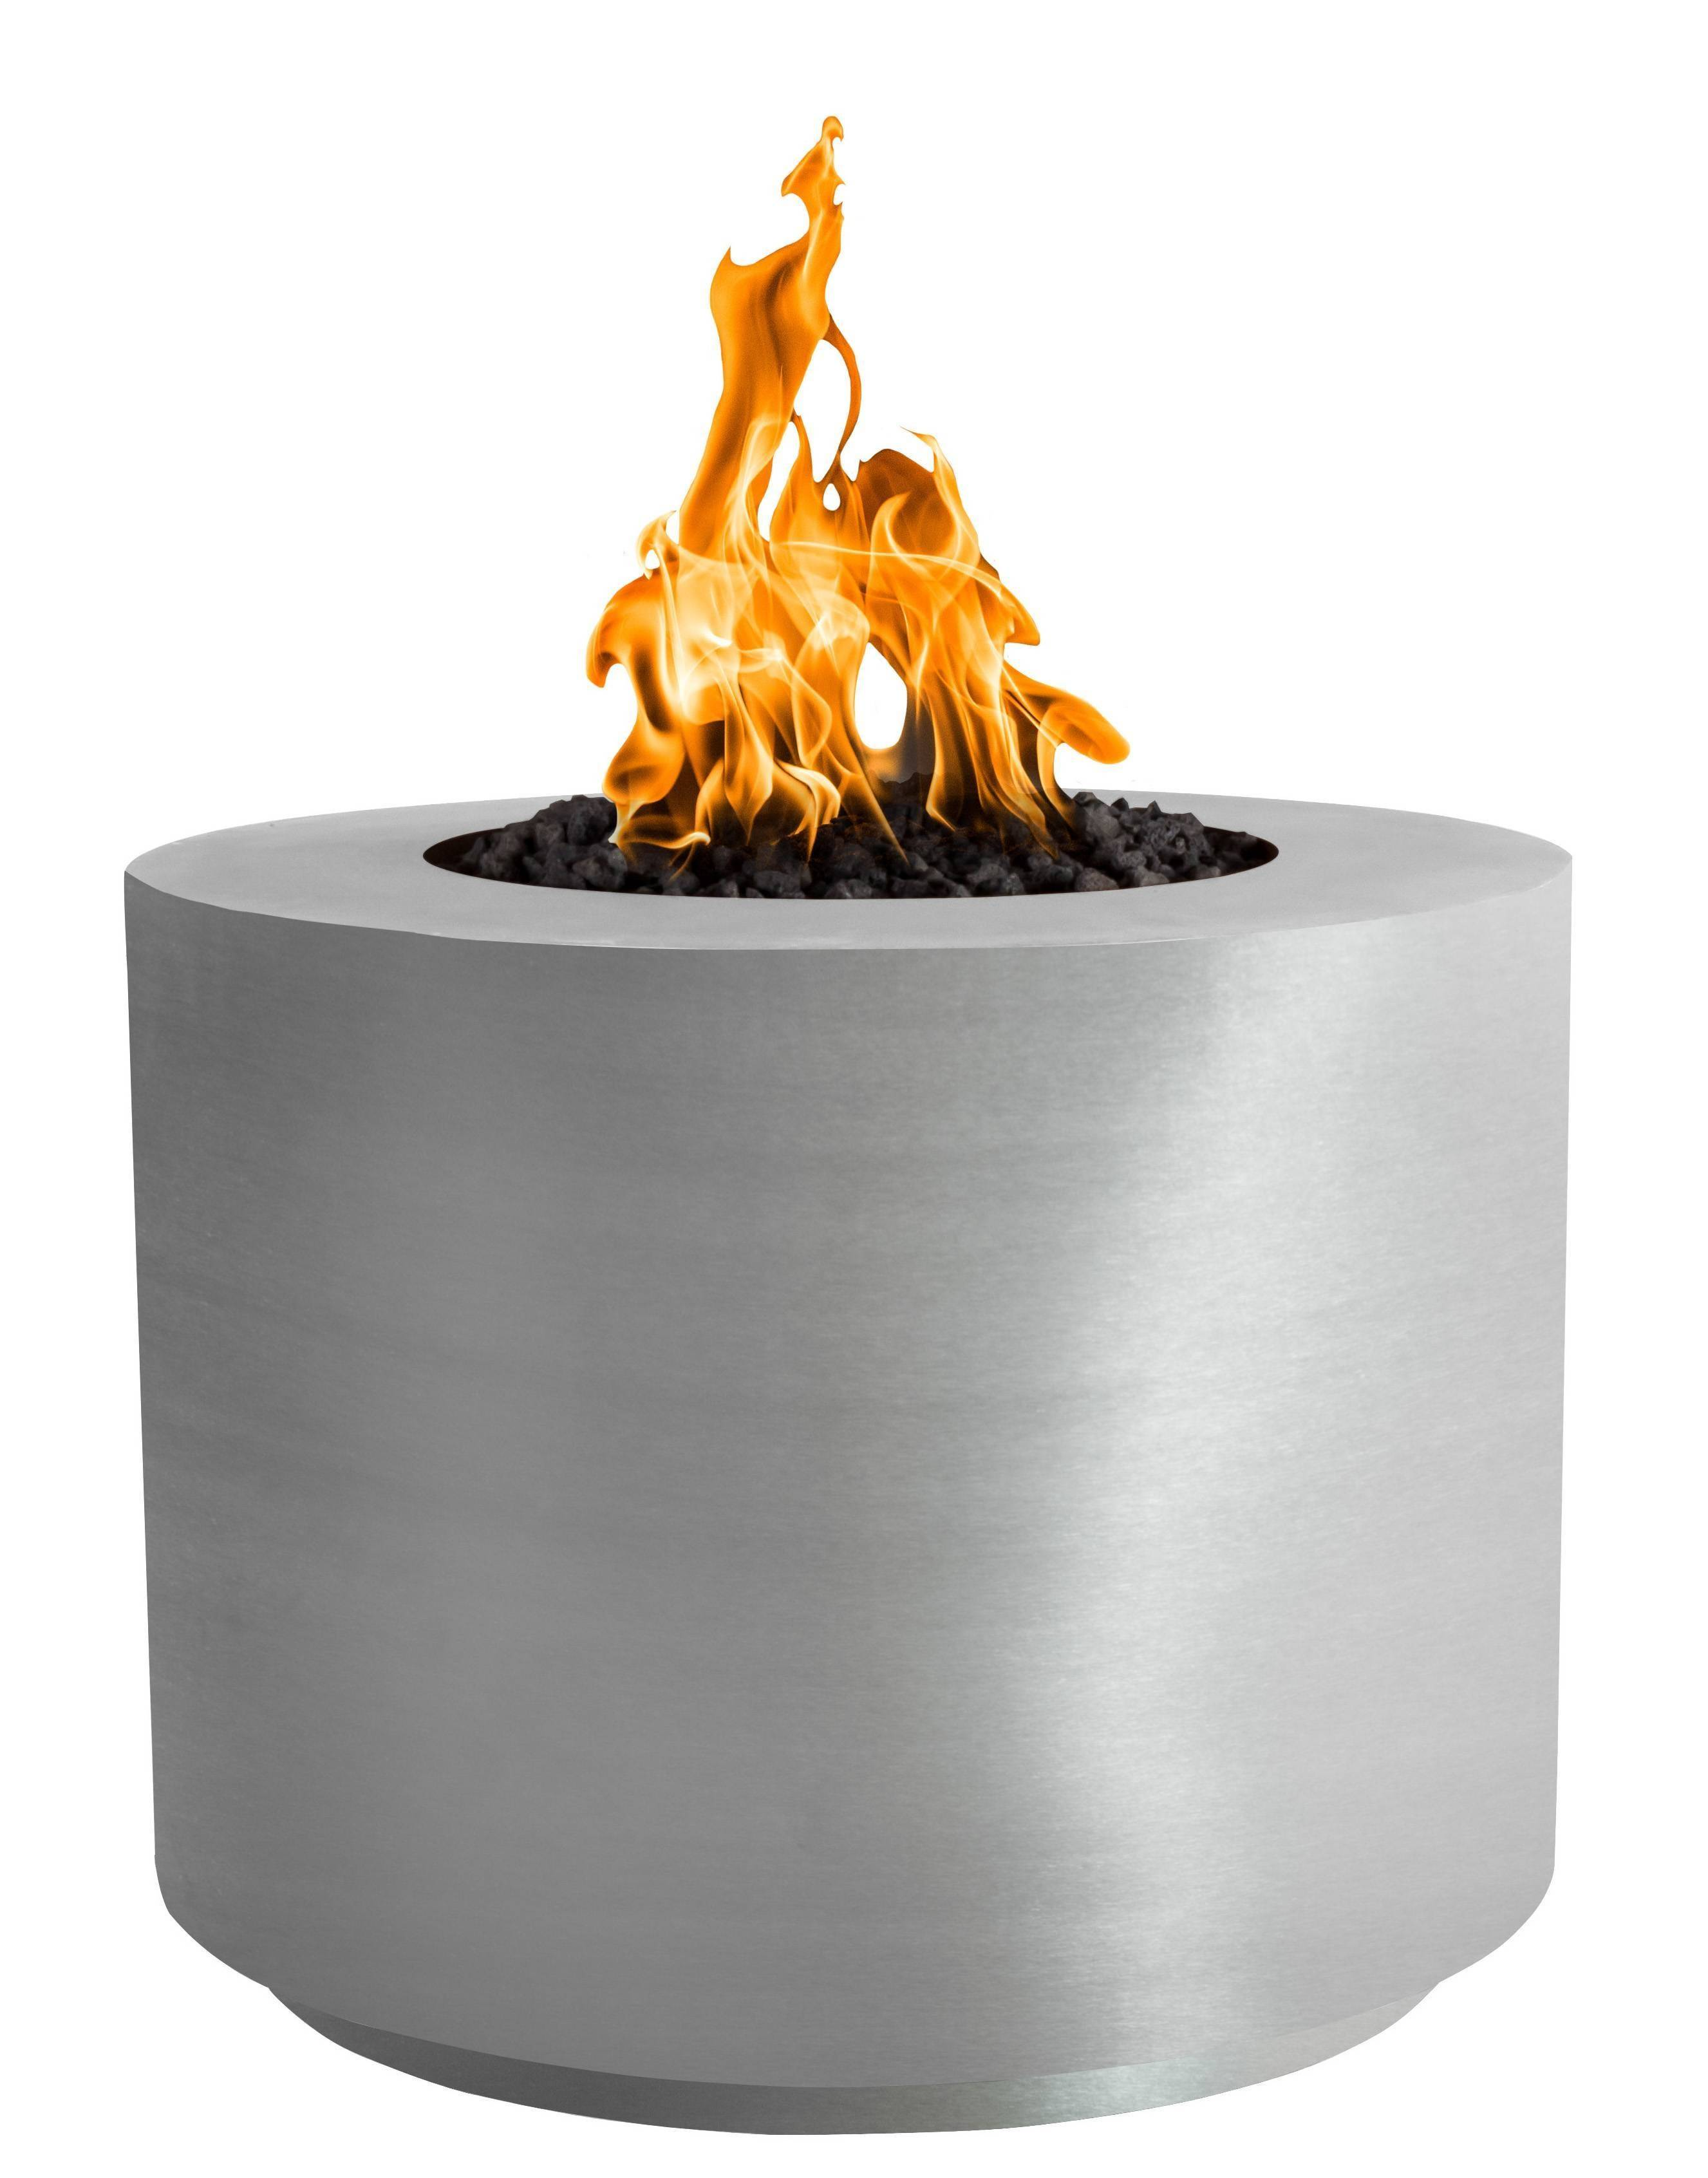 Steel Fire Pit Table - Cirque SS | Starting at $3,050